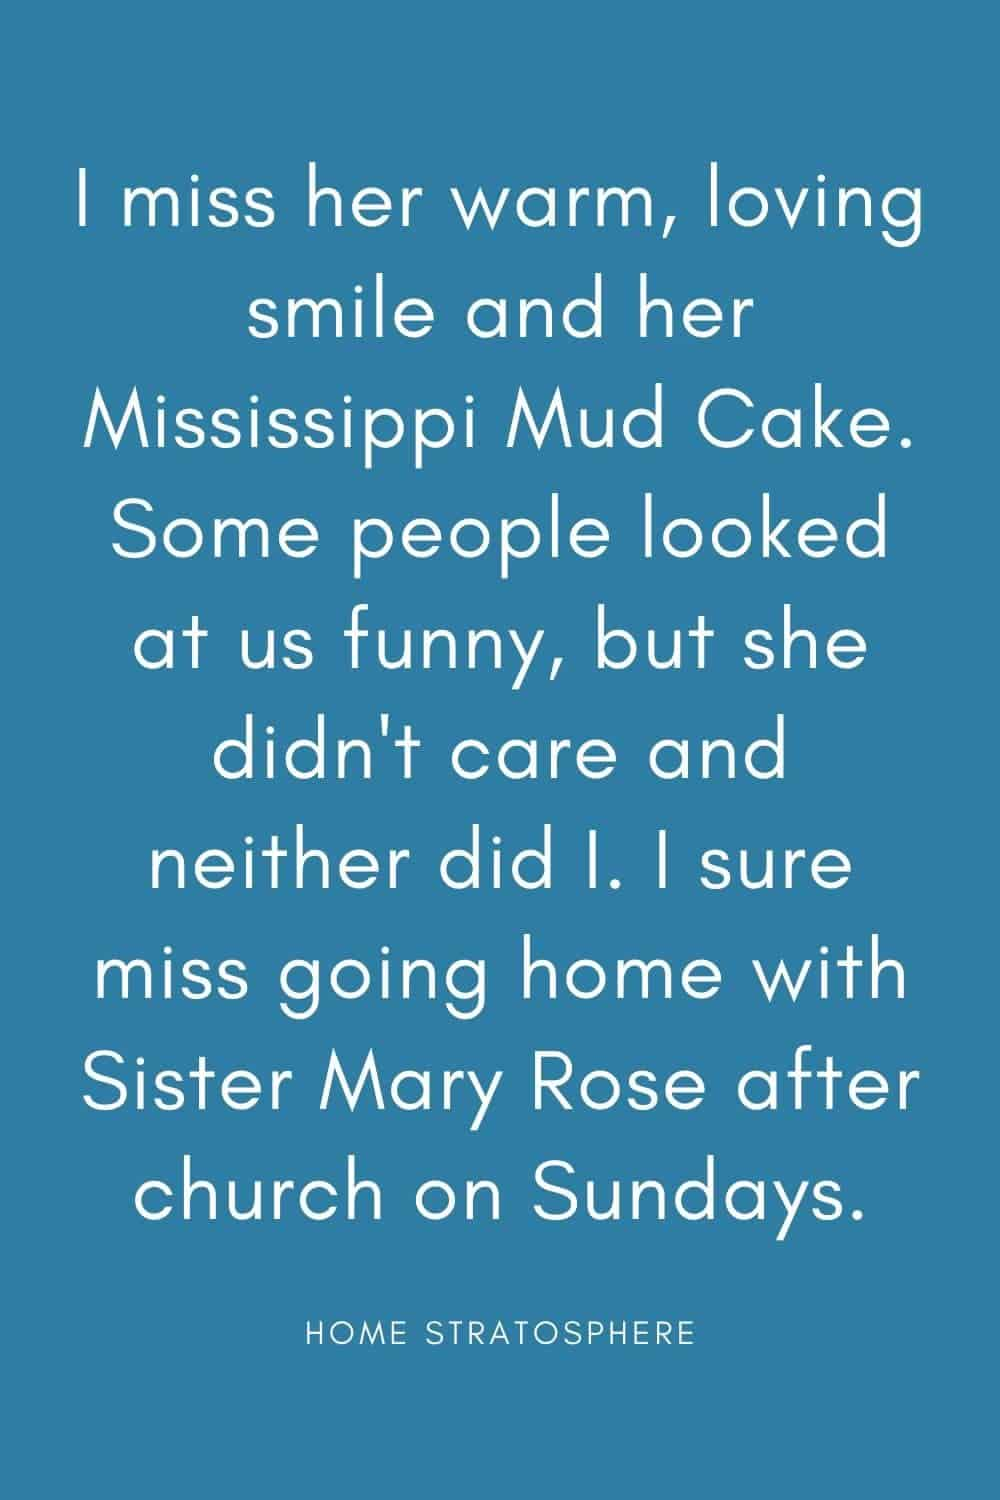 """I miss her warm, loving smile and her Mississippi Mud Cake. Some people looked at us funny, but she didn't care and neither did I. I sure miss going home with Sister Mary Rose after church on Sundays."""